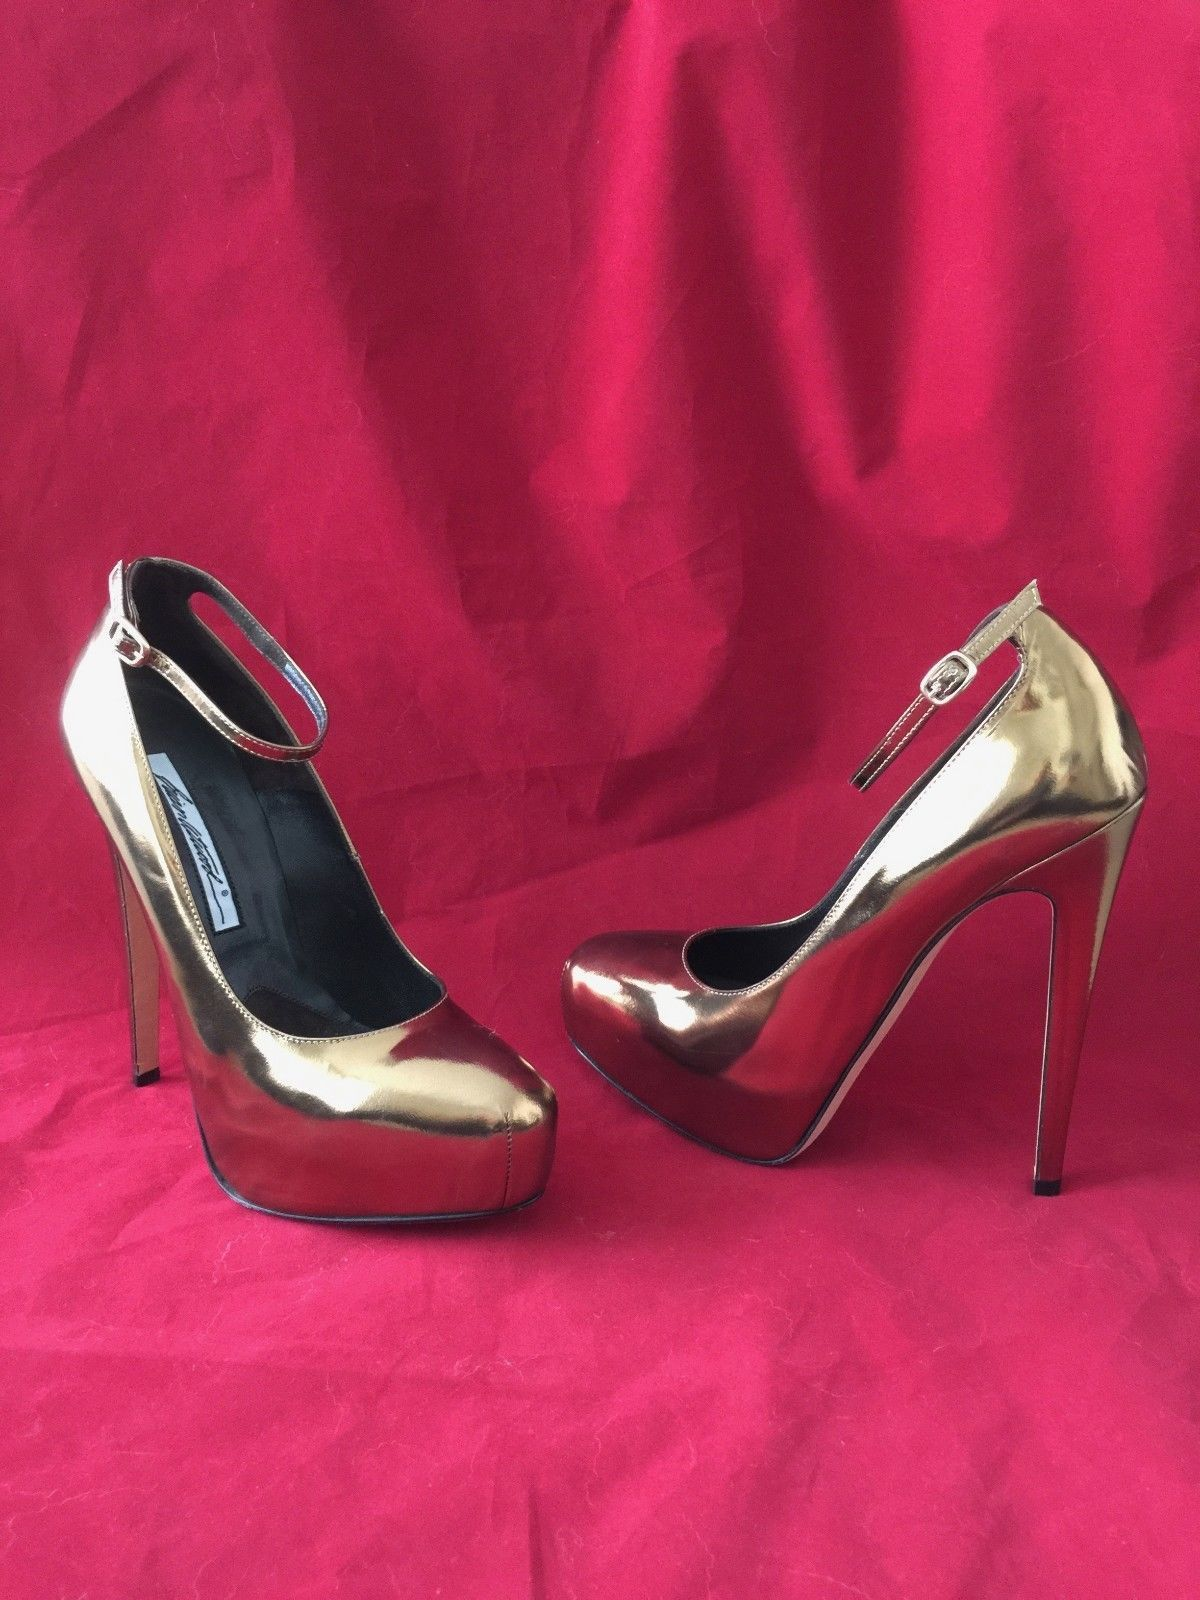 38582be6c8a BRIAN ATWOOD ZENITH GOLD LEATHER HIDDEN PLATFORM ANKLE STRAP HEELS ...